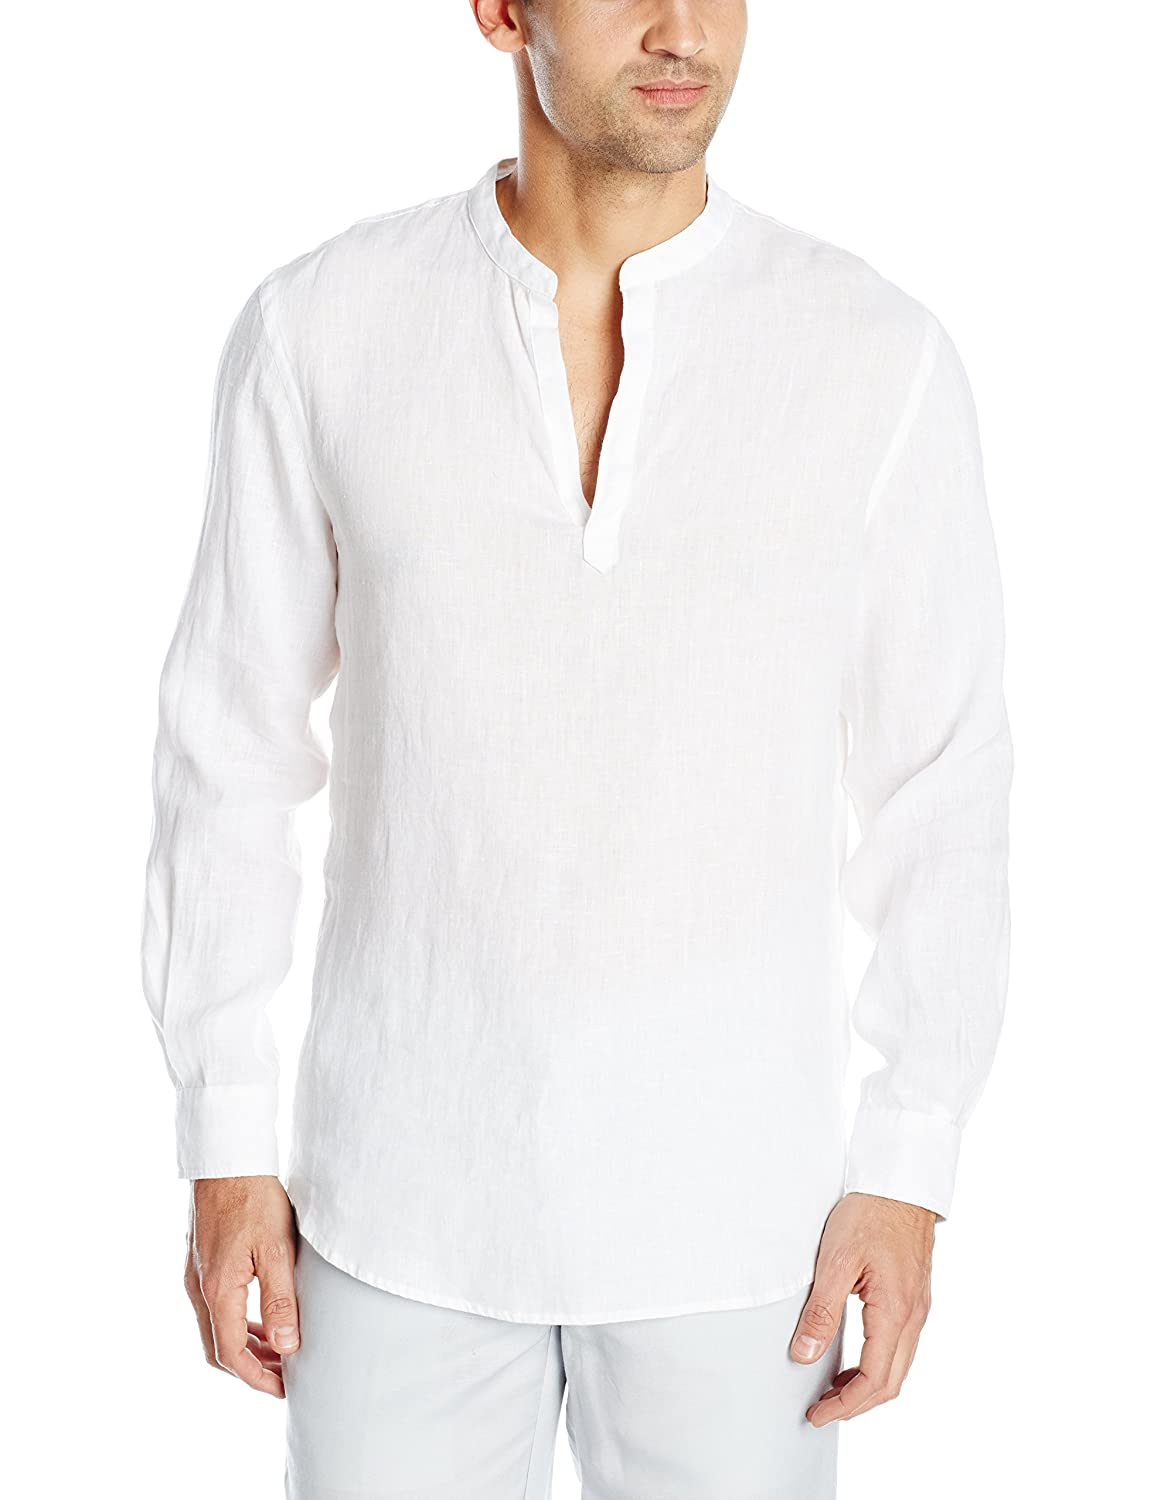 Finest Amazon.com: Perry Ellis Men's Long-Sleeve Solid Linen Popover  ZN21